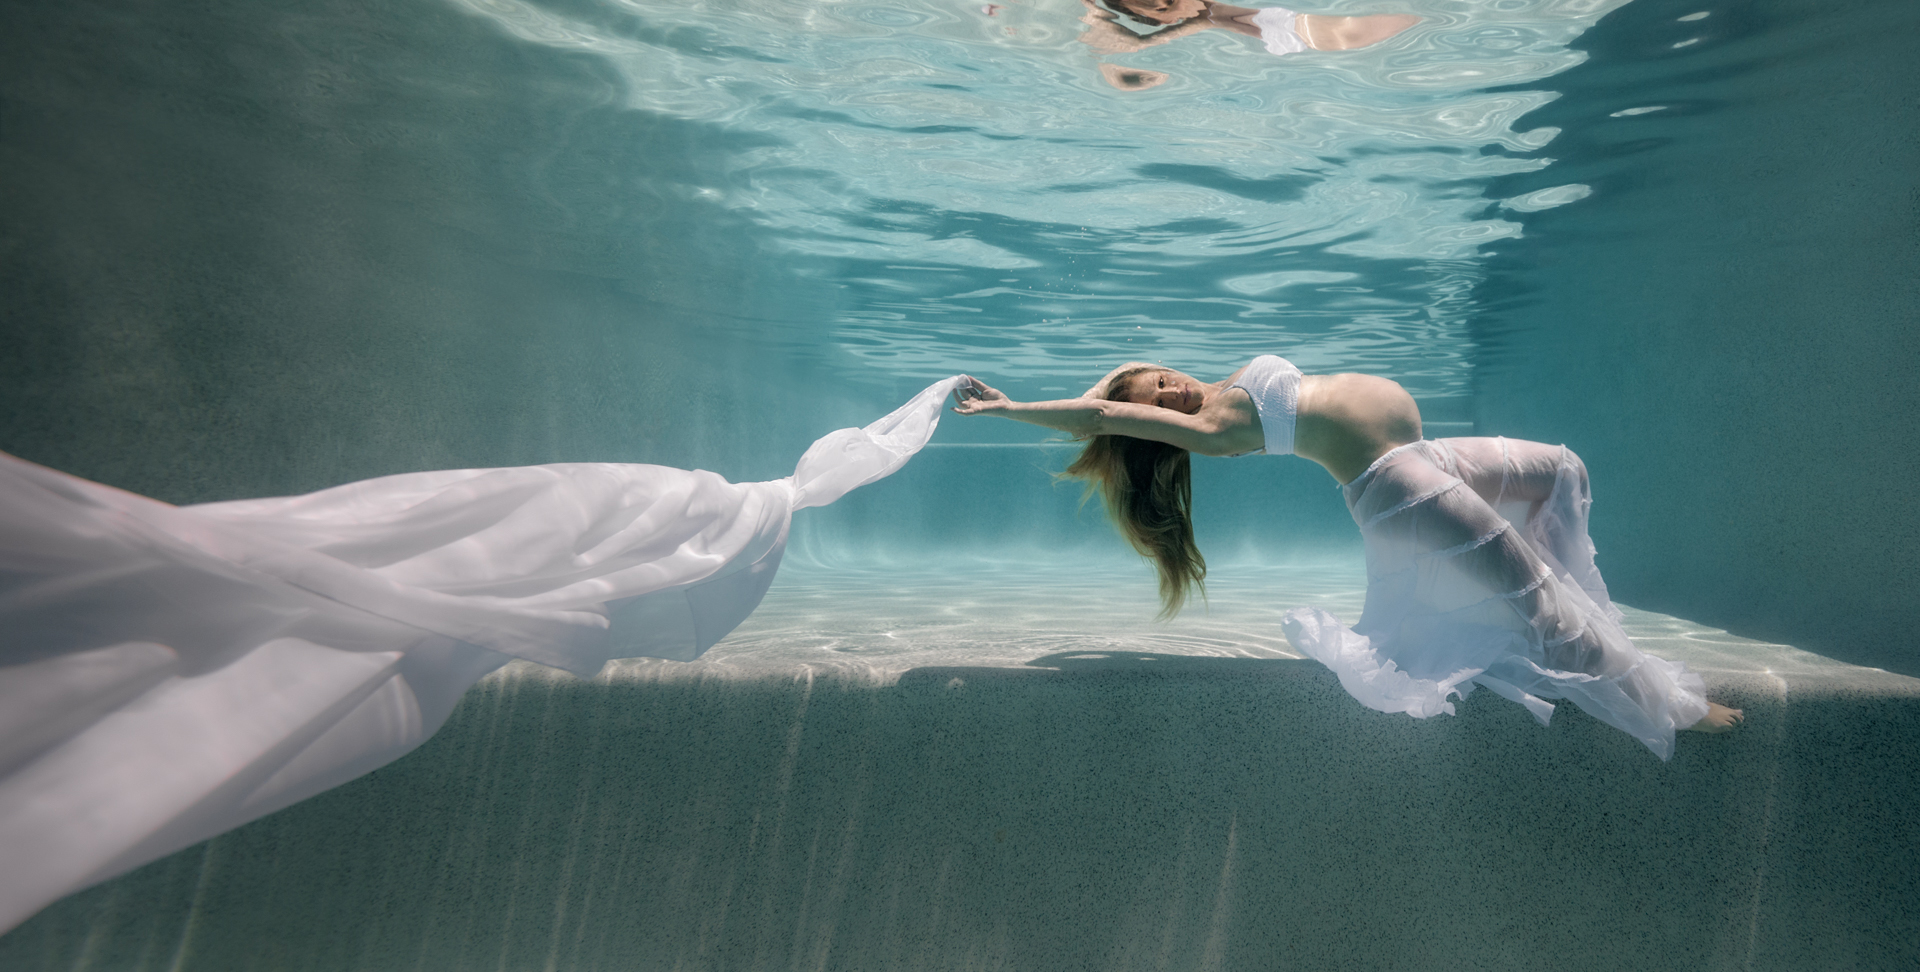 Underwater maternity portrait of a pregnant lady in a large swimming pool, wearing flowing white skirt and draping a long white chiffon scarf